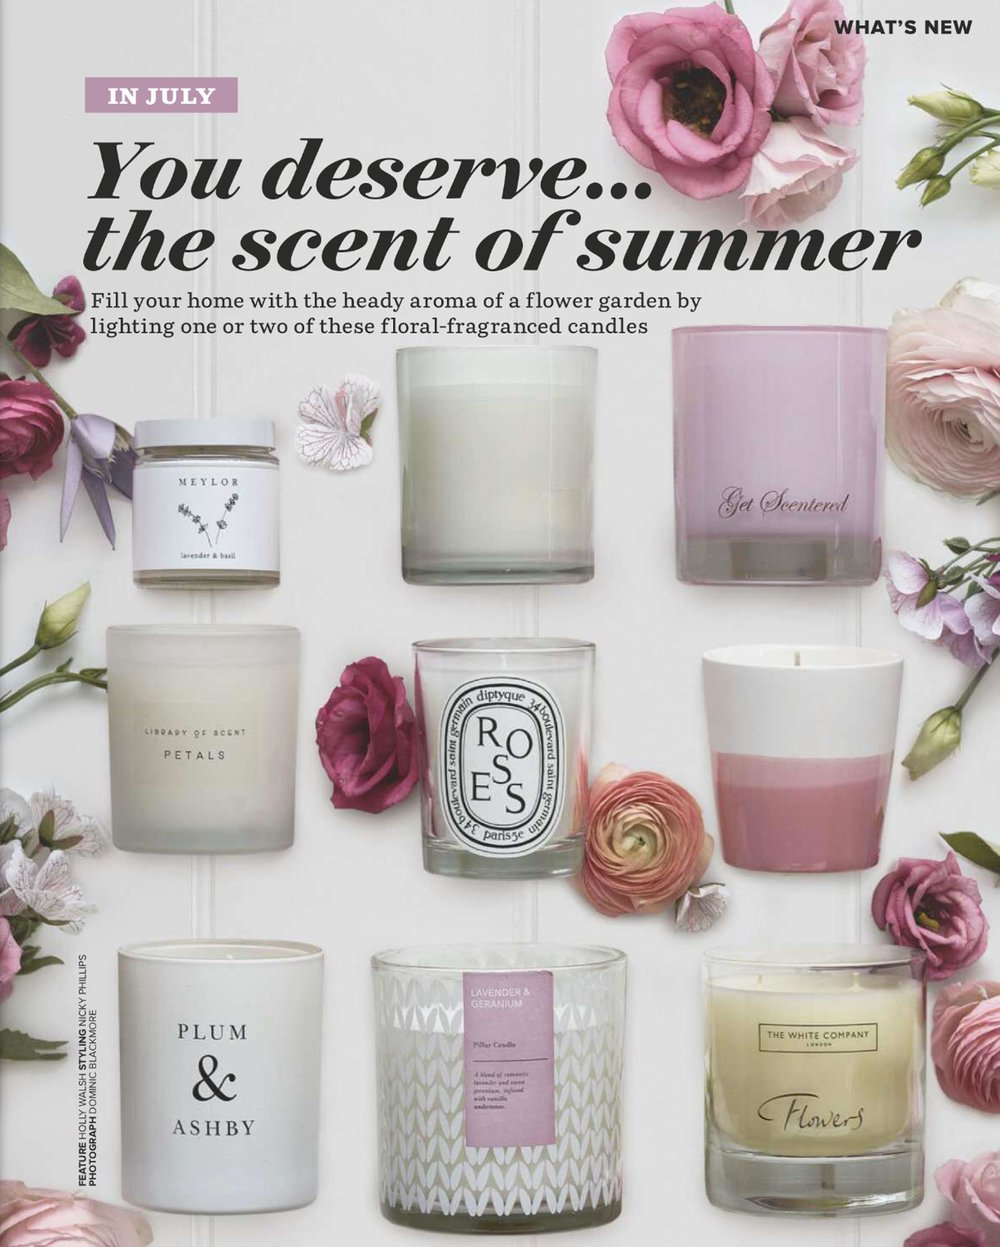 press-candles-seen-in-ideal-home-magazine.jpg